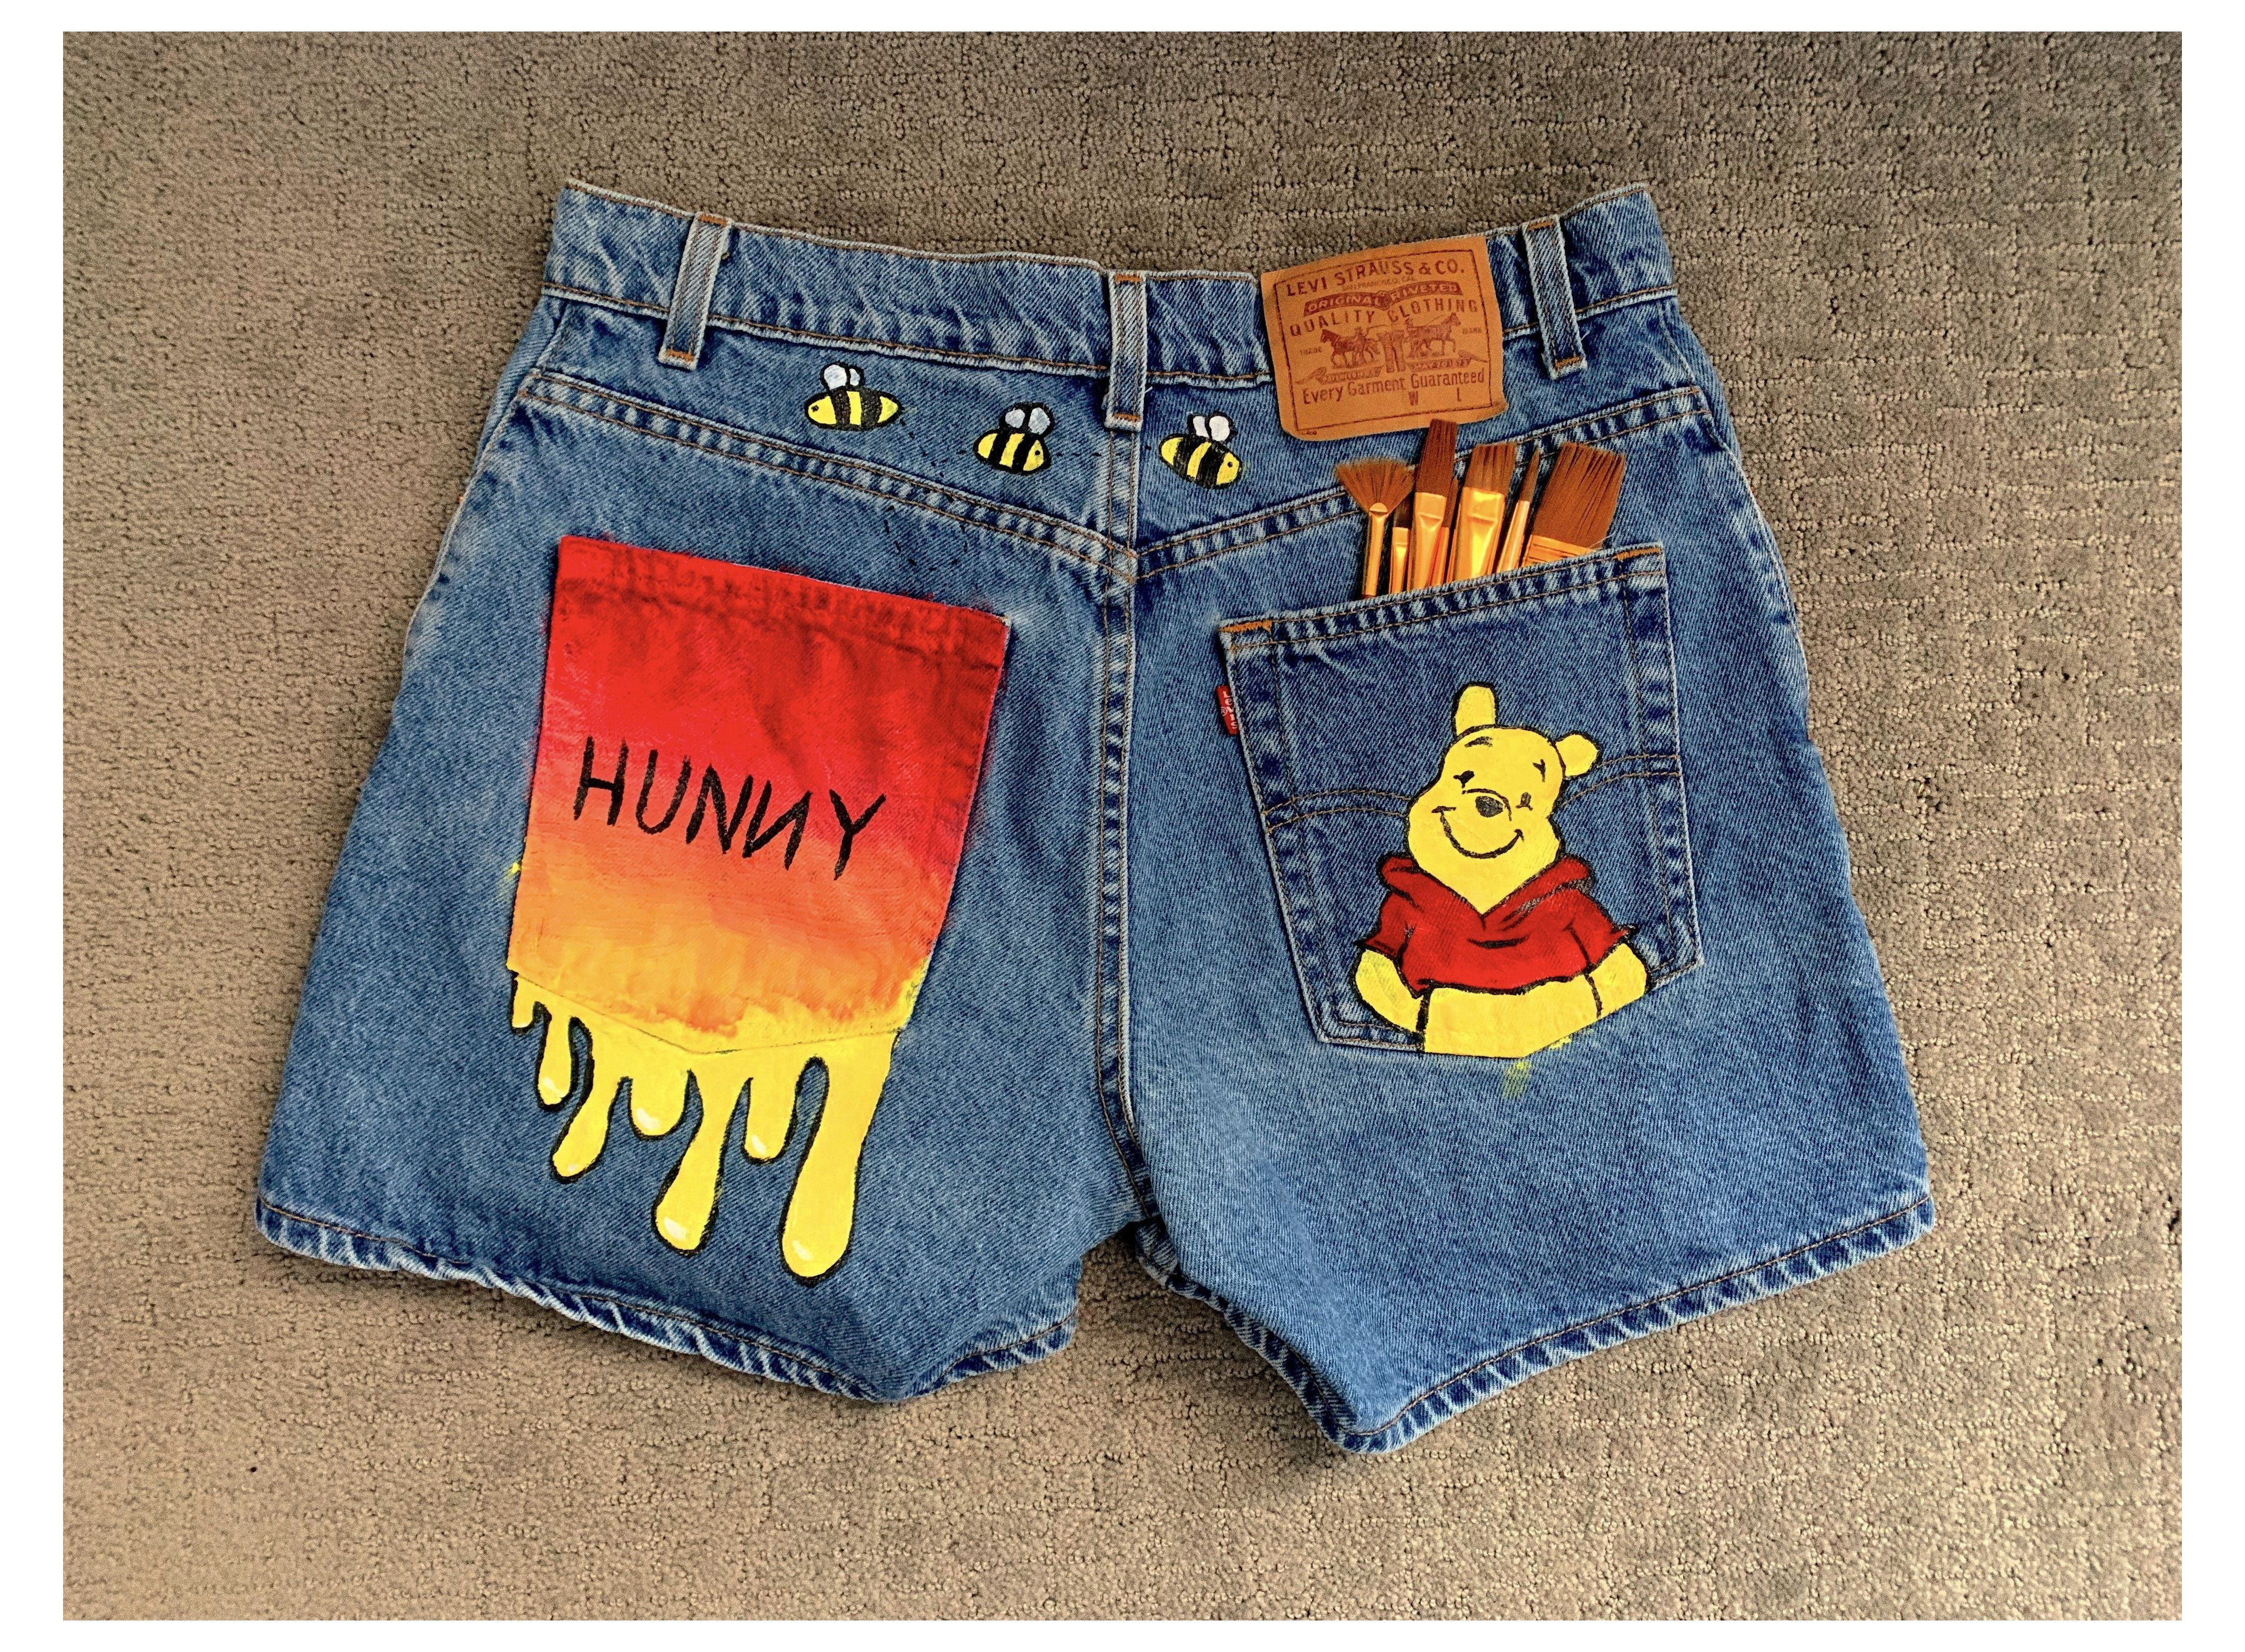 Winnie The Pooh Hand Painted Shorts 101142 Painted Jeans Paintedjeans Hand Painted Winnie The Pooh Levi Shorts Painted Shorts Painted Jeans Painted Denim